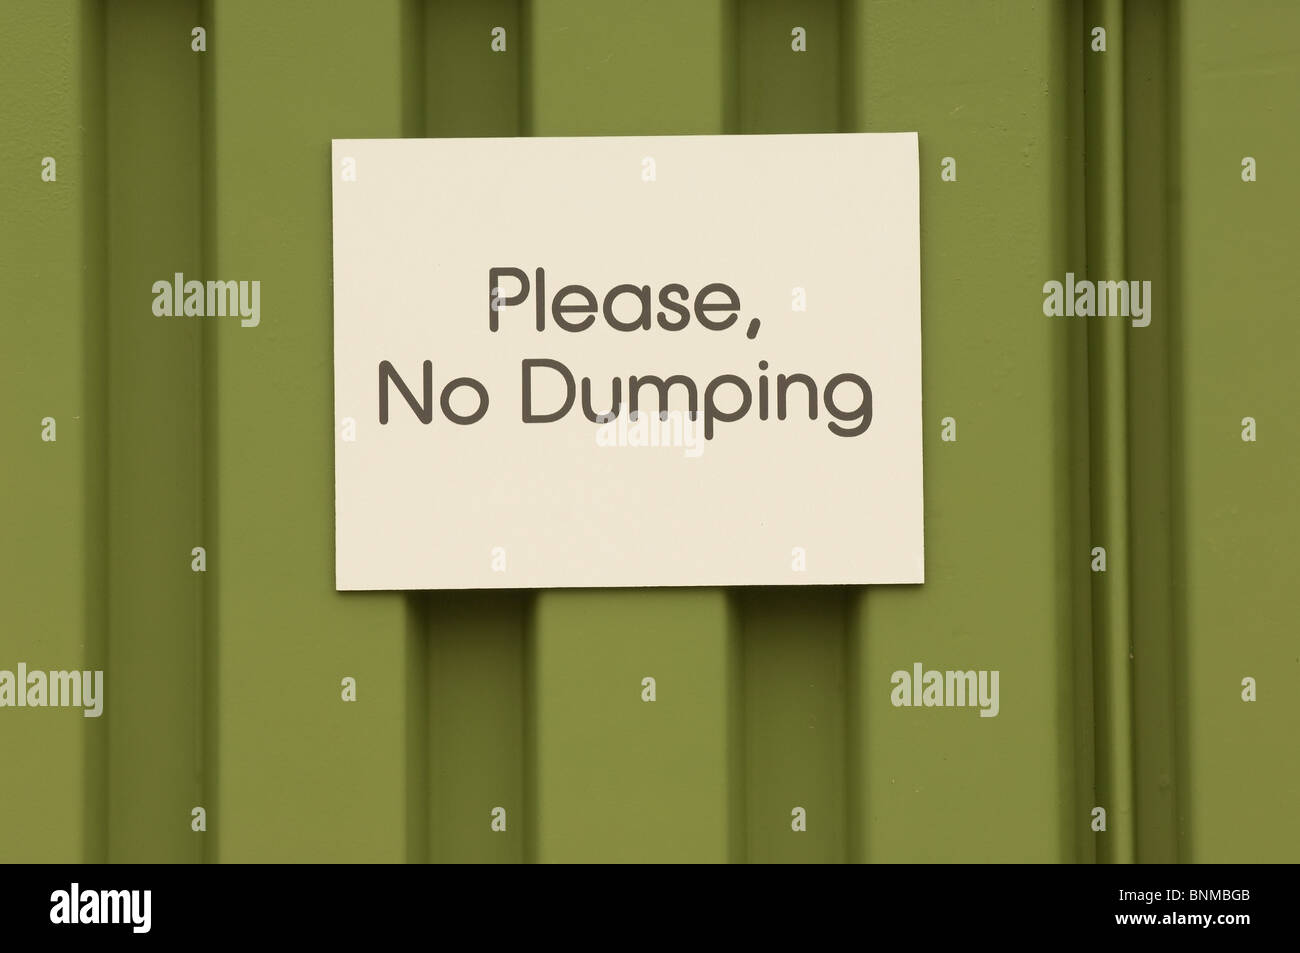 Sign that says 'Please, No Dumping' - Stock Image